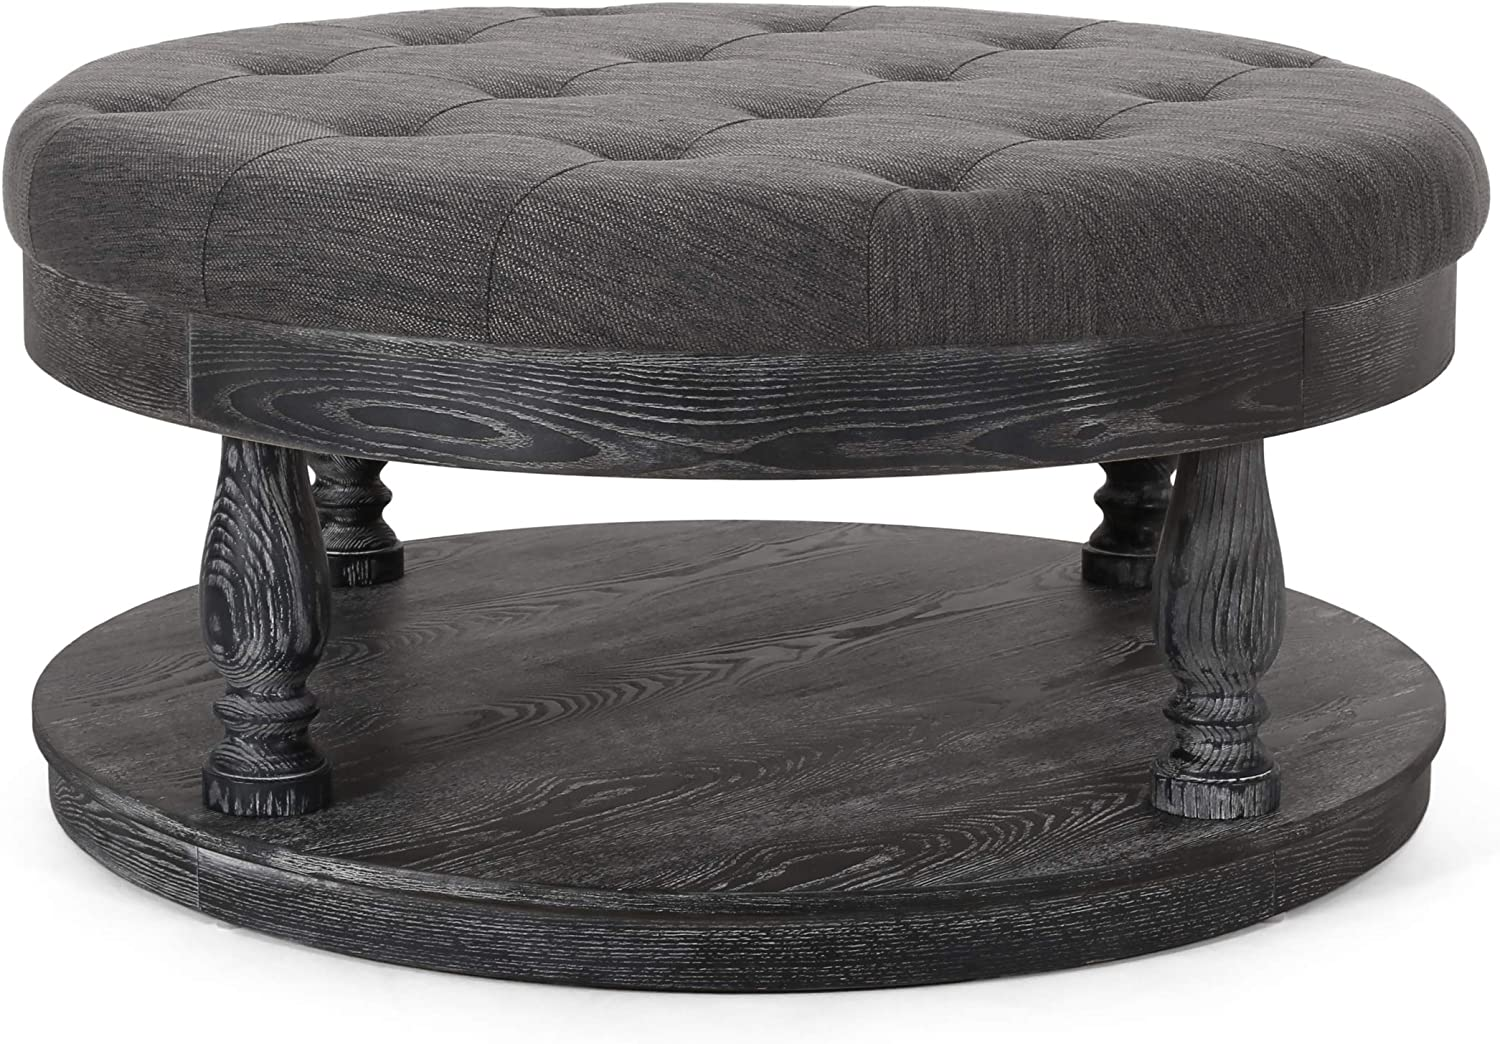 Christopher Knight Home Francis Contemporary Fabric Round Ottoman, Charcoal and Gray